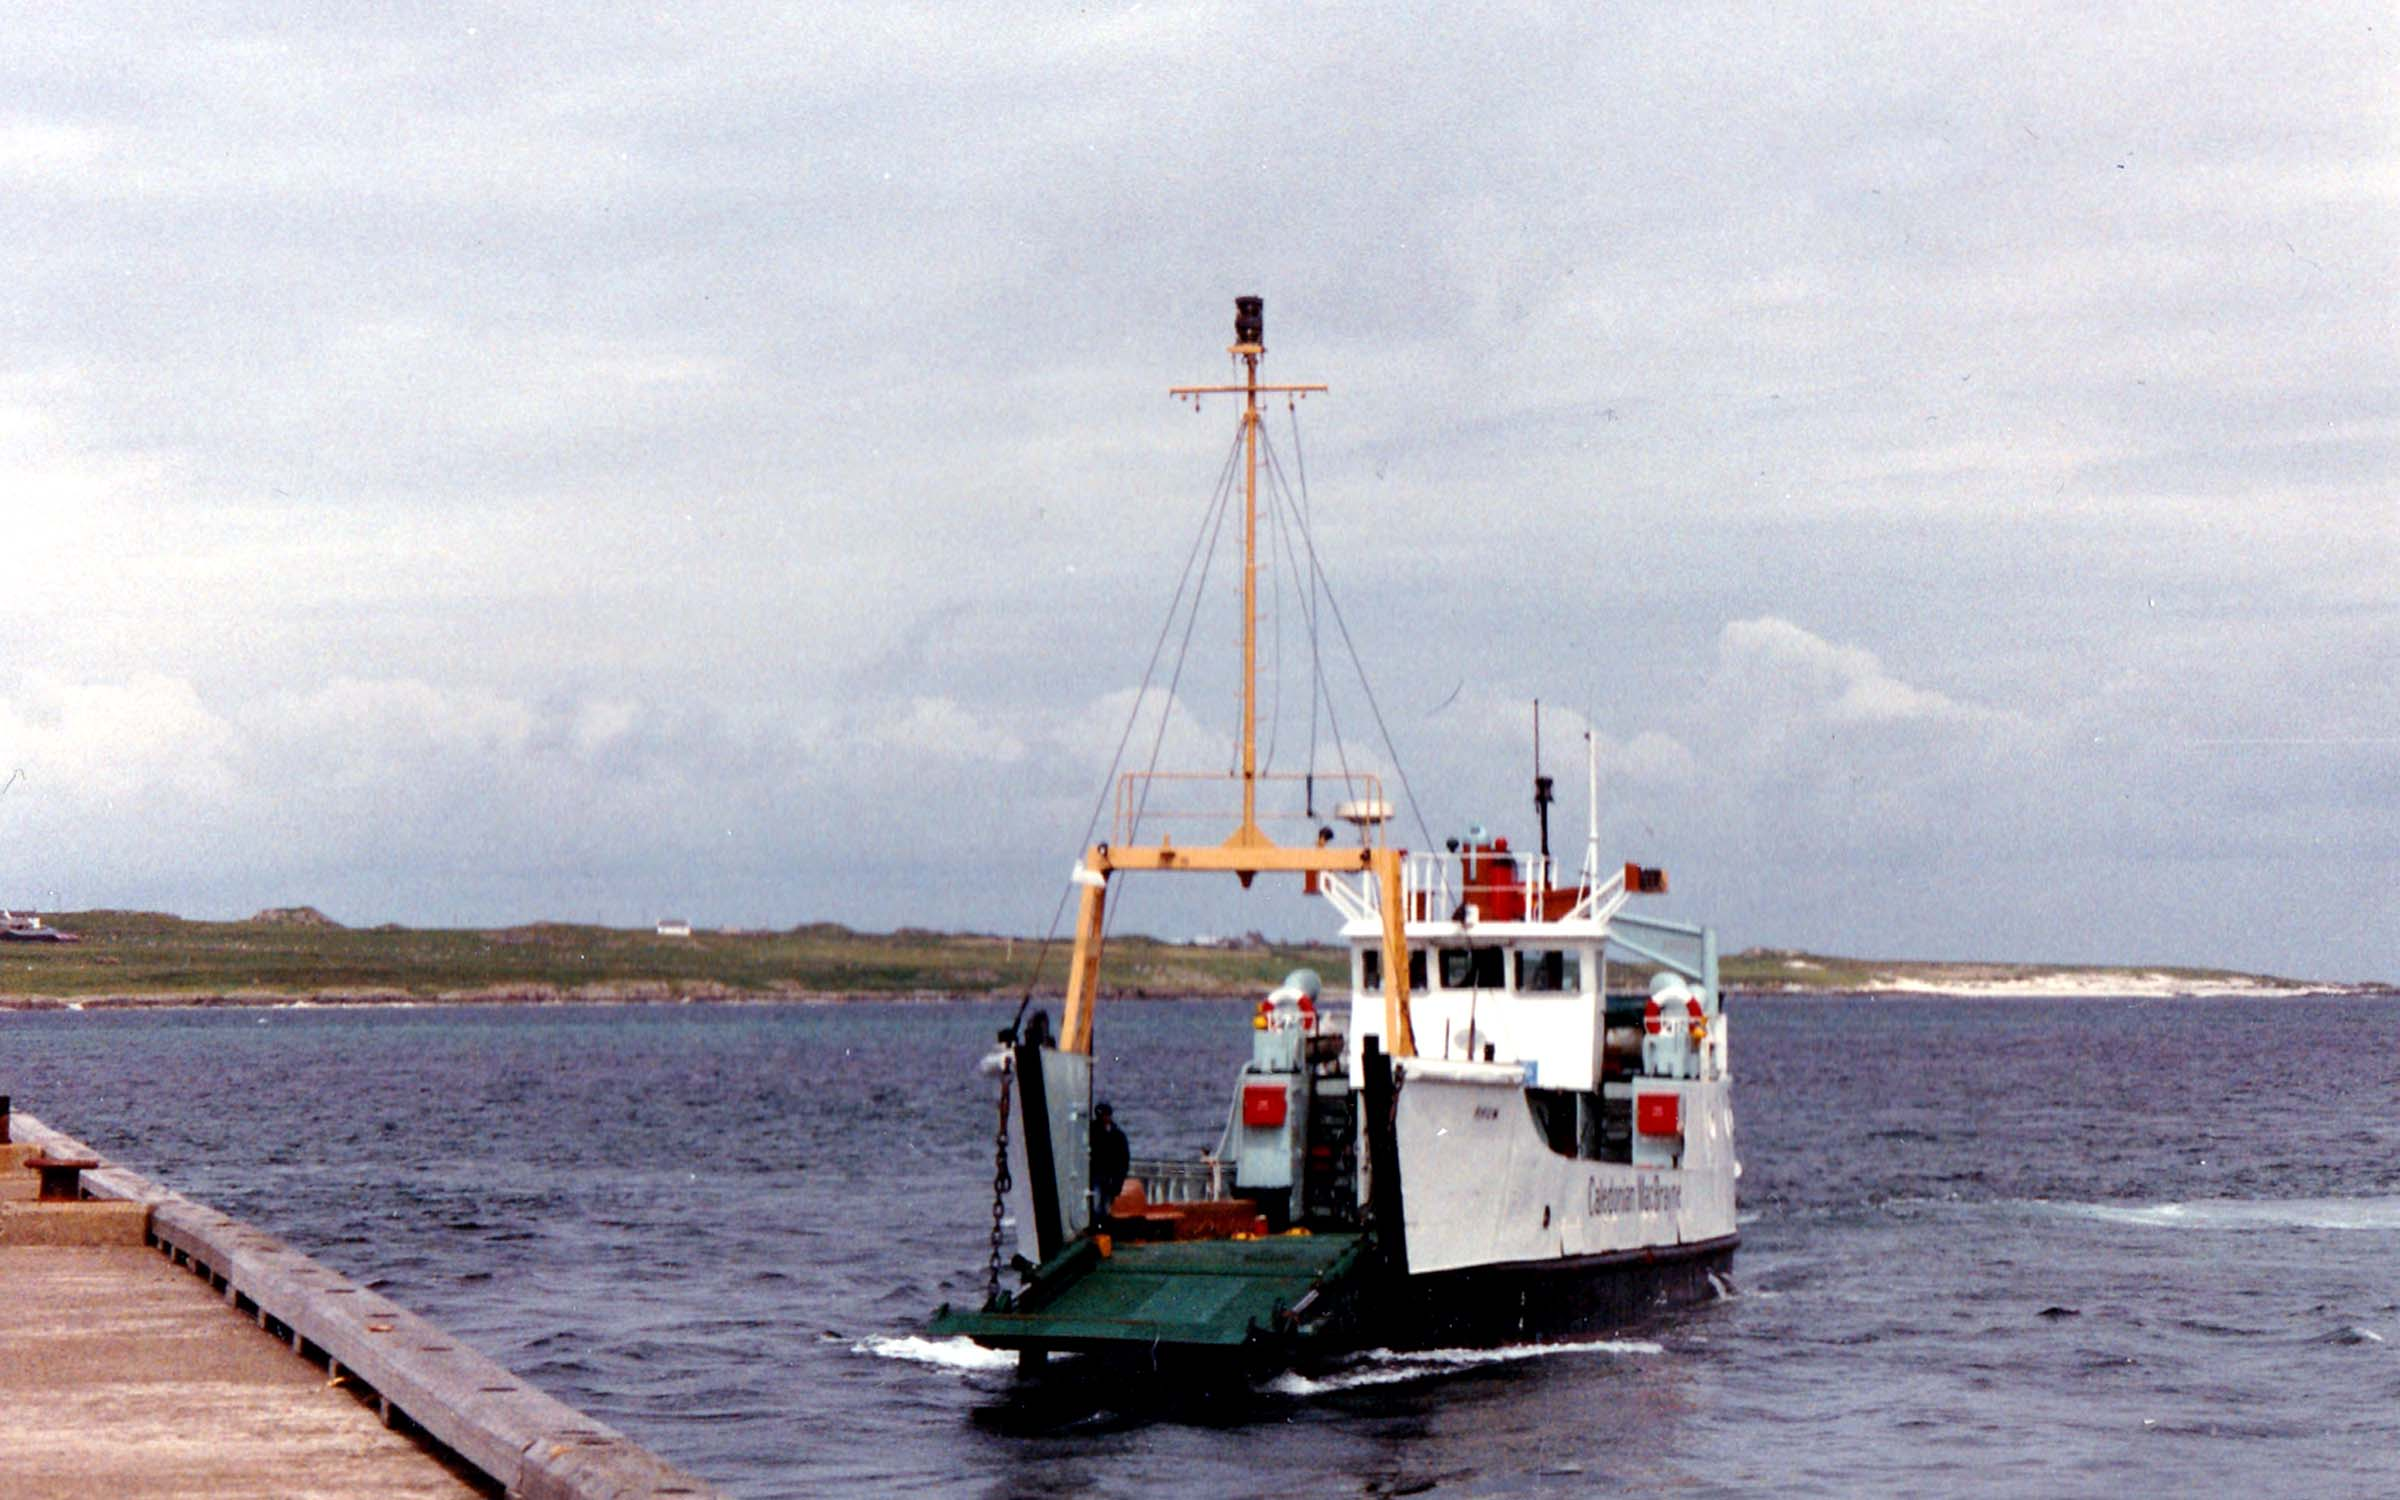 Rhum arriving at Fionnphort (Jim Aikman Smith)